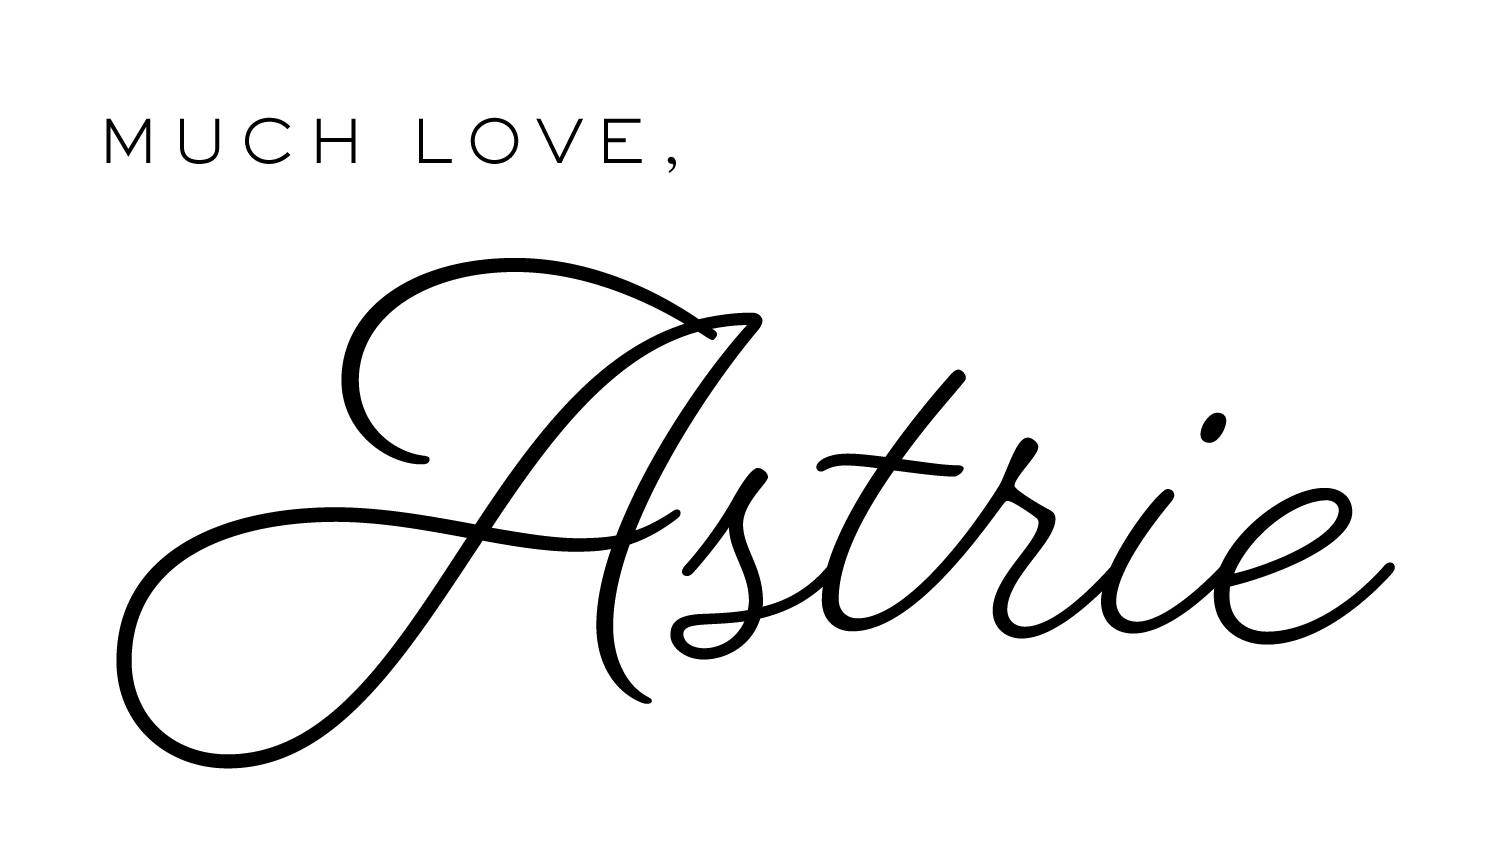 astrie-signature.png